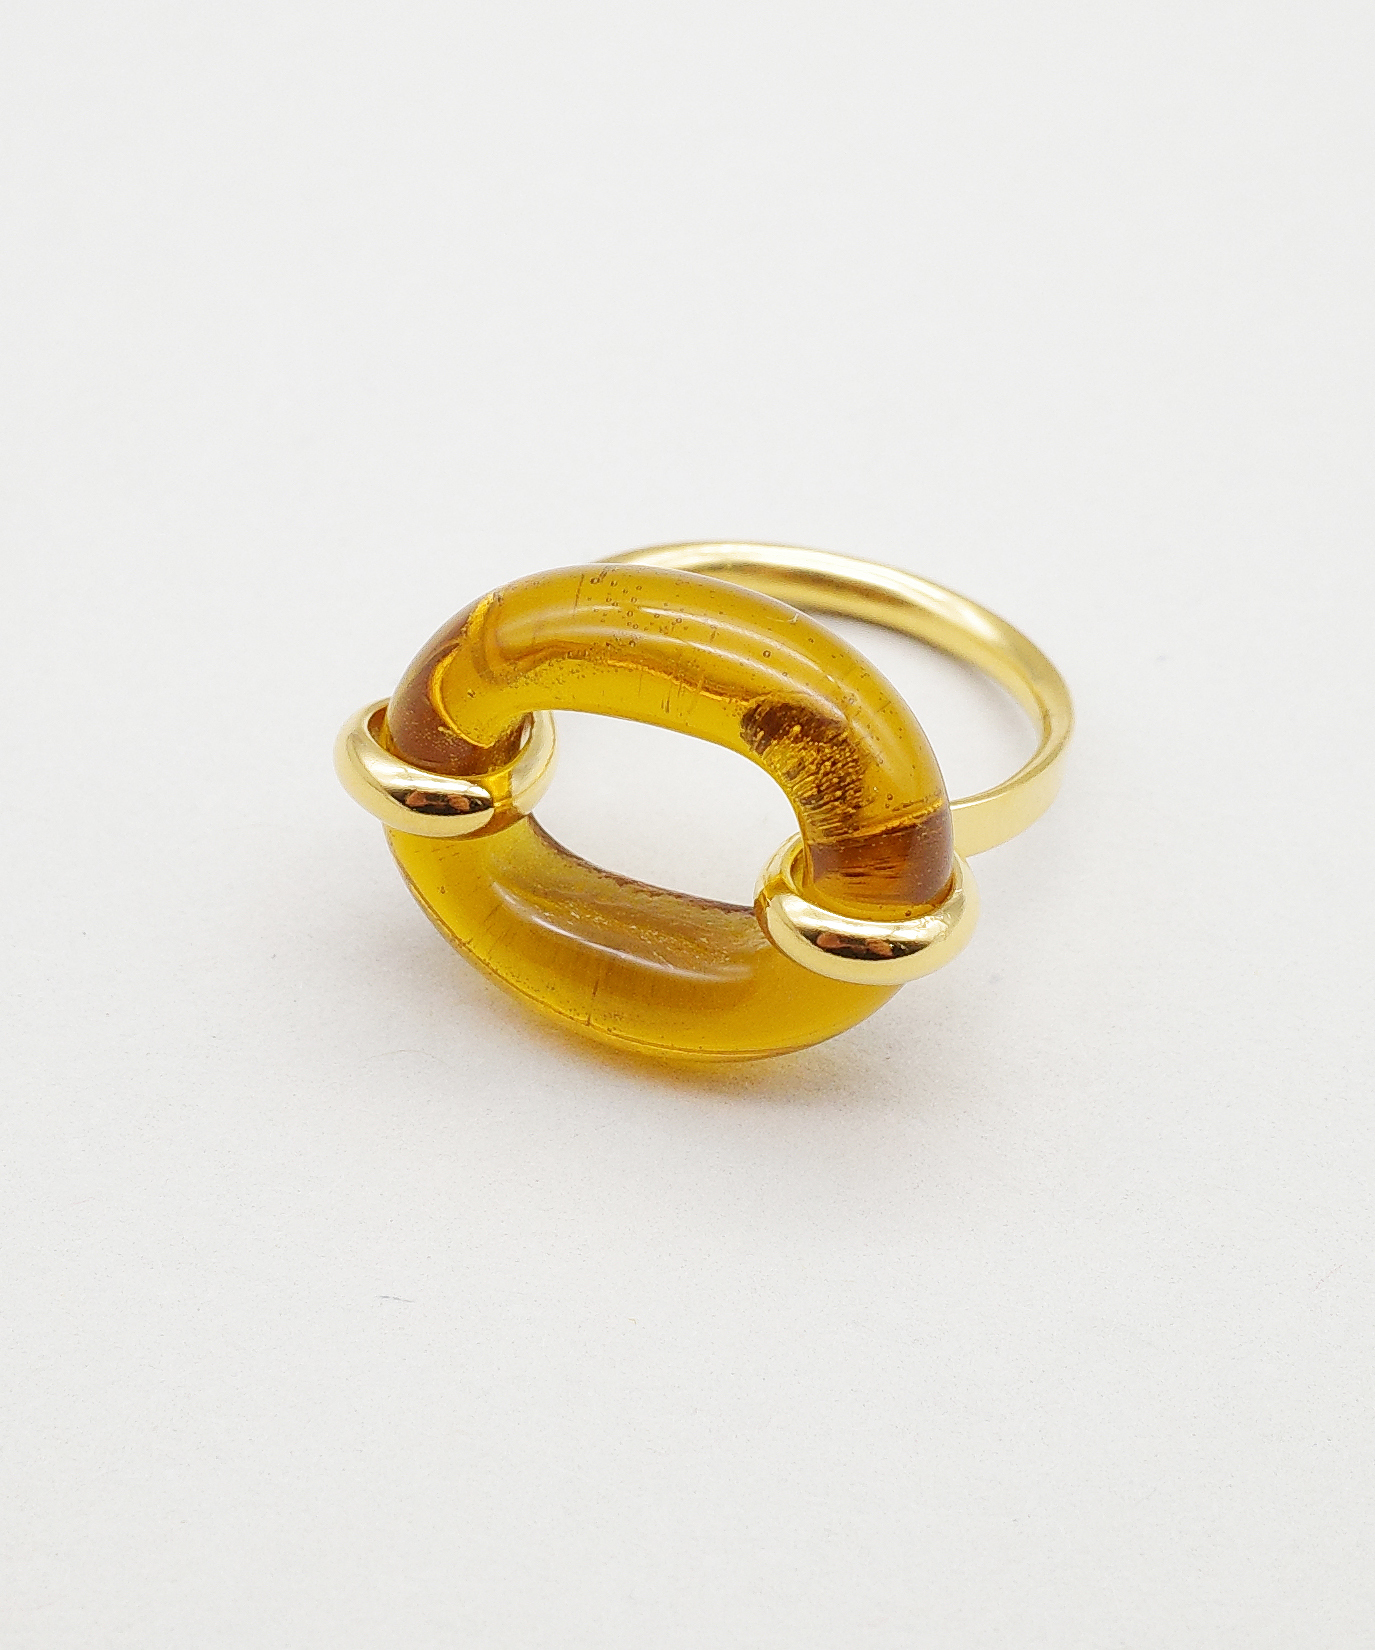 【CLED / クレッド】IN THE LOOP Ring / リング / 14K Gold Filled×Brown Amber